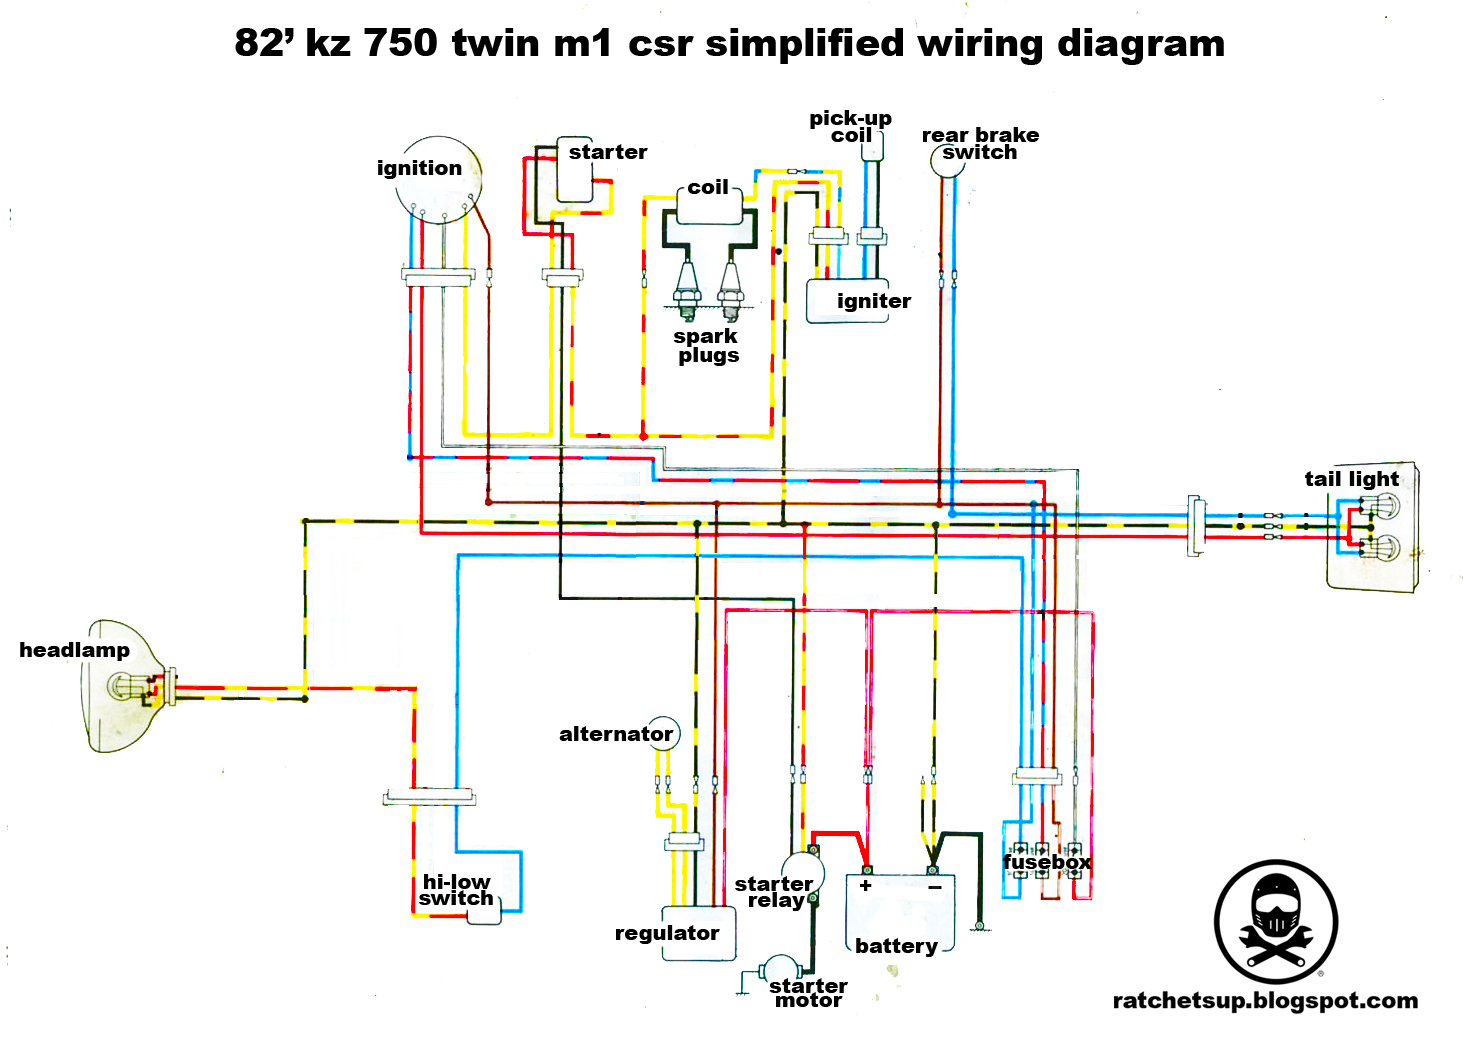 kz750+simple+diagram simplified minimal kz750 csr wiring diagram kzrider forum 1980 kawasaki 440 ltd wiring diagram at bayanpartner.co